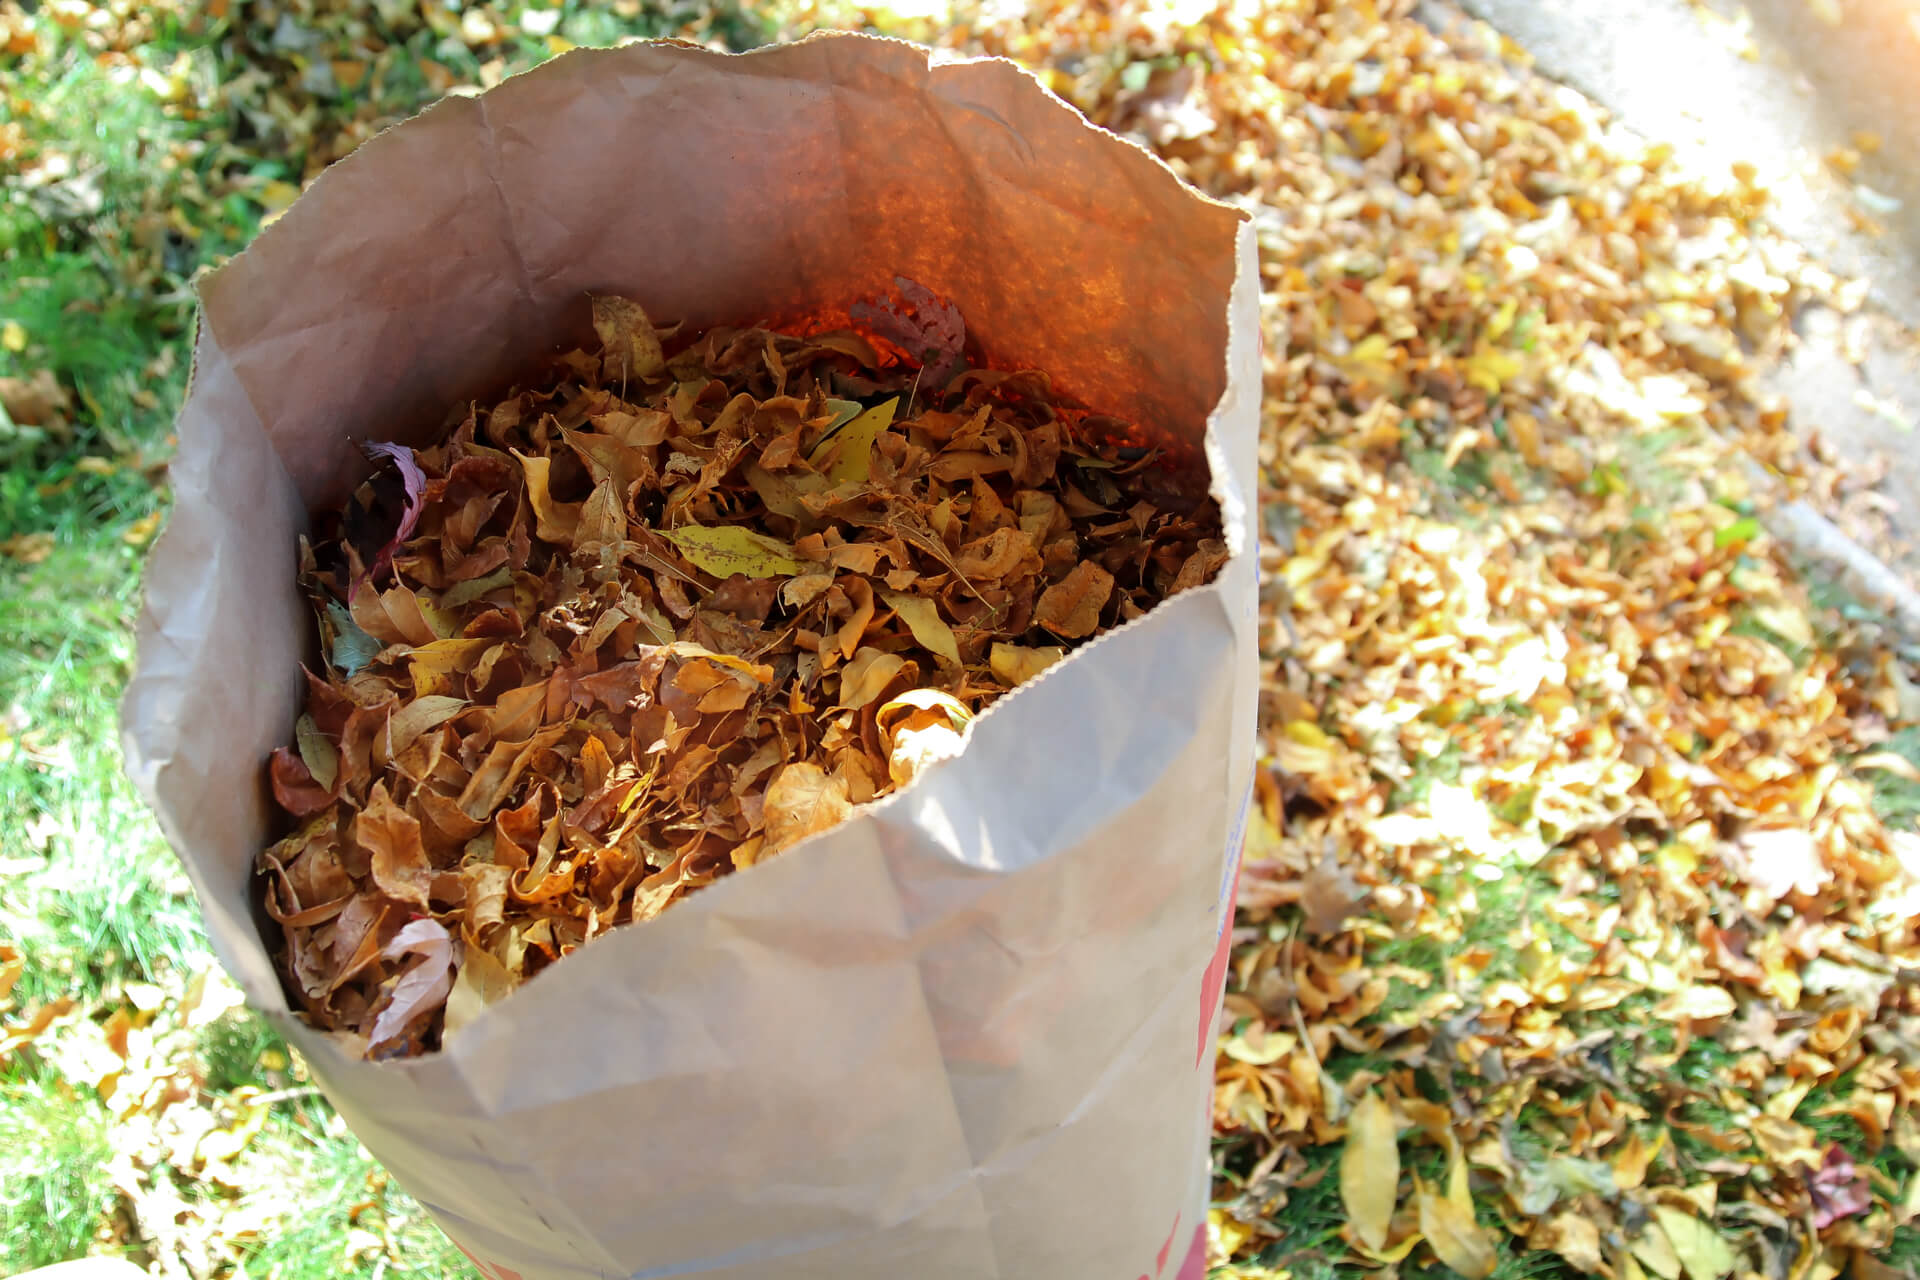 Making Compost | Using Leaf Bags to Compost | Fall Garden Care ...